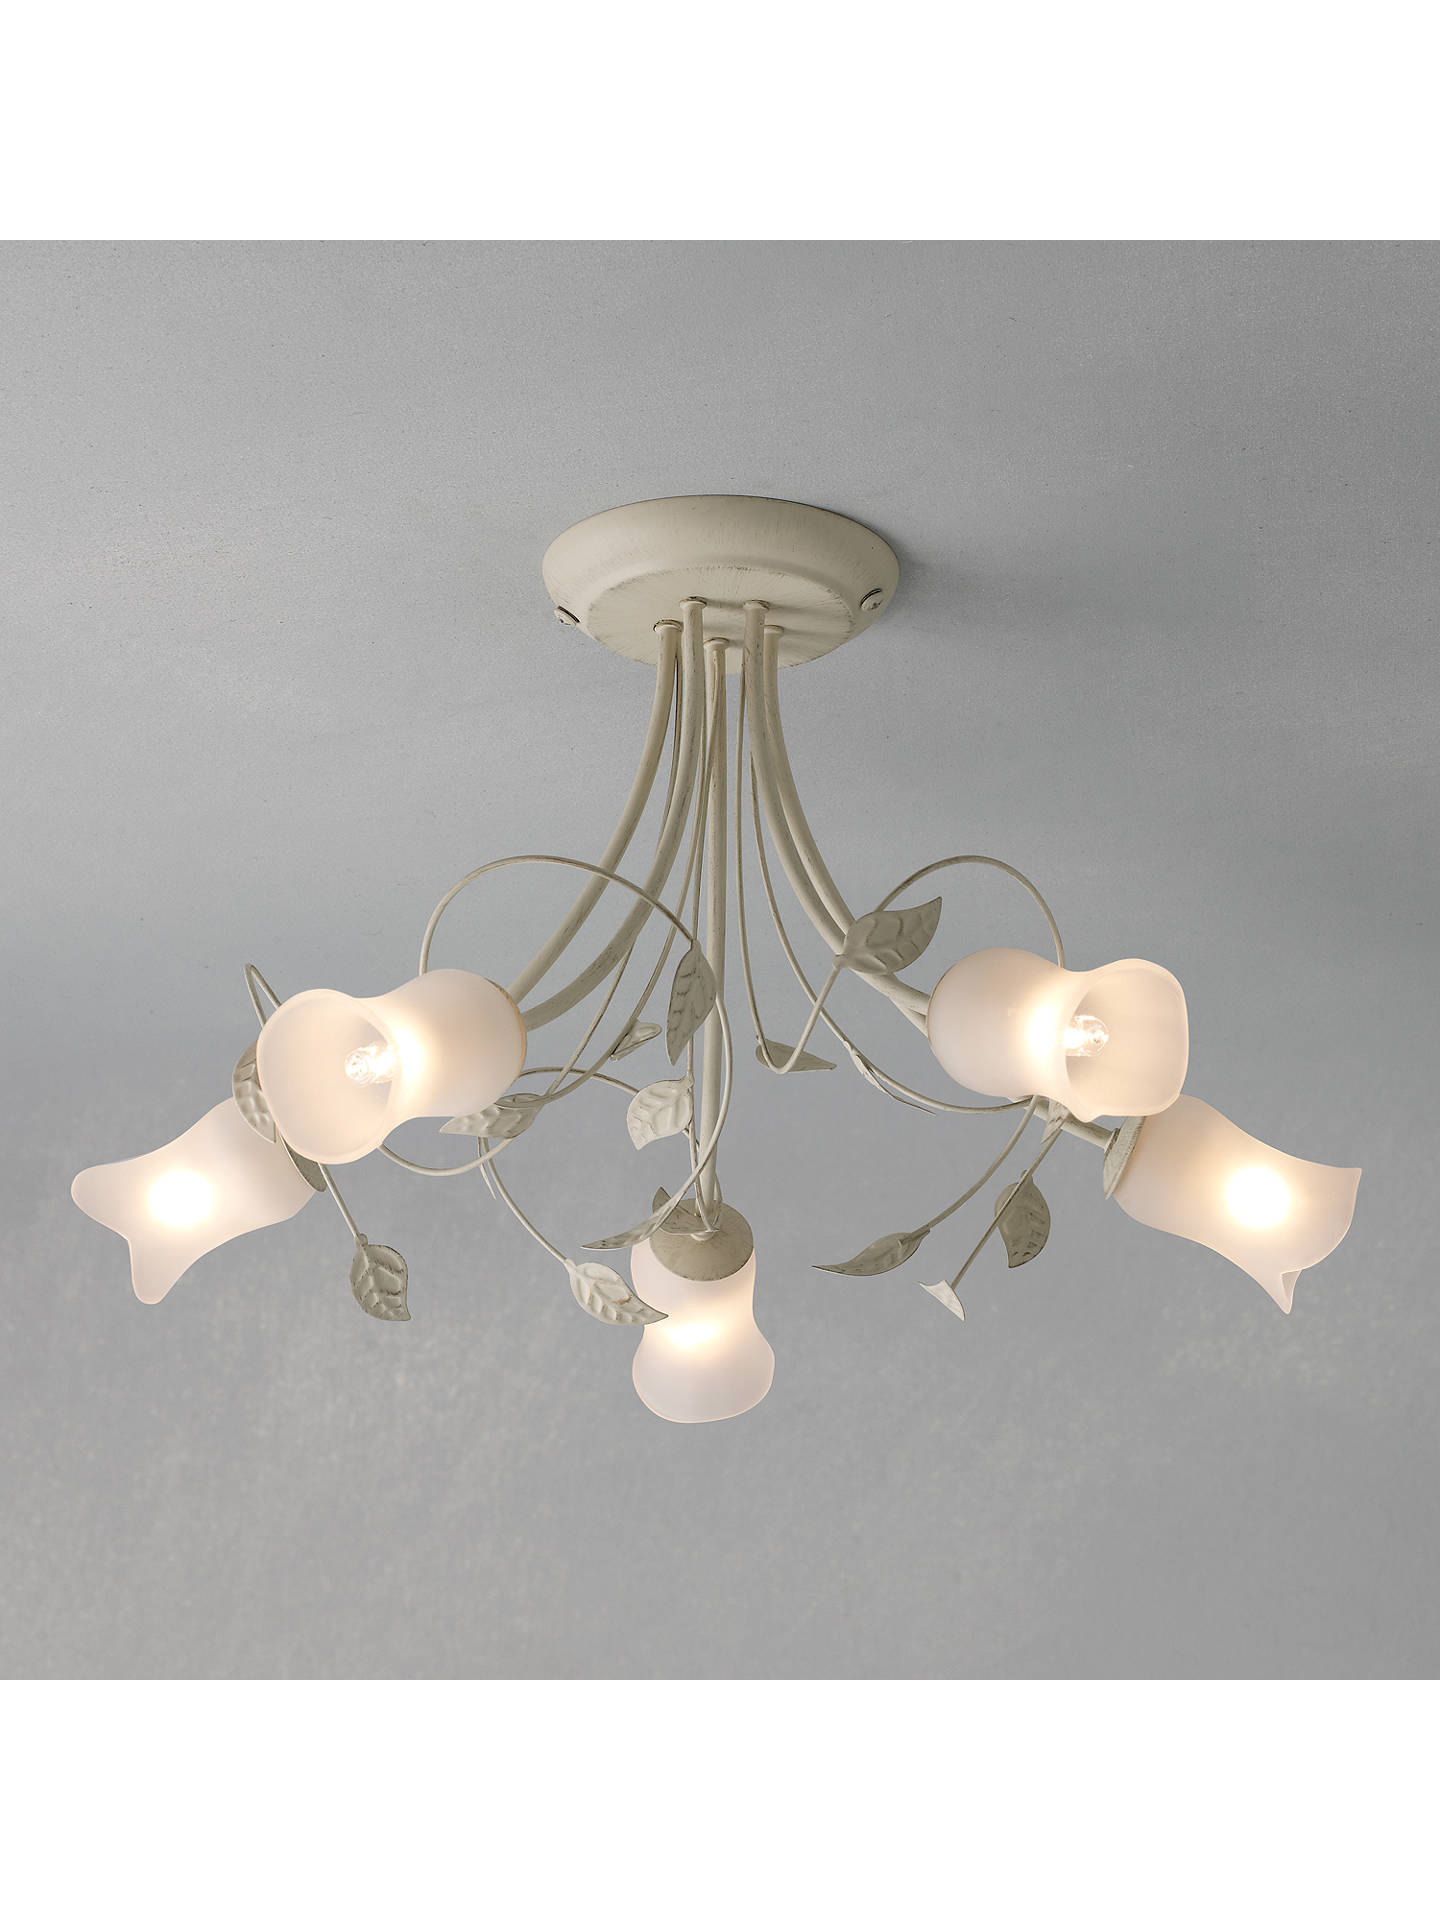 John Lewis Amy Ceiling Light 5 Arm At Partners